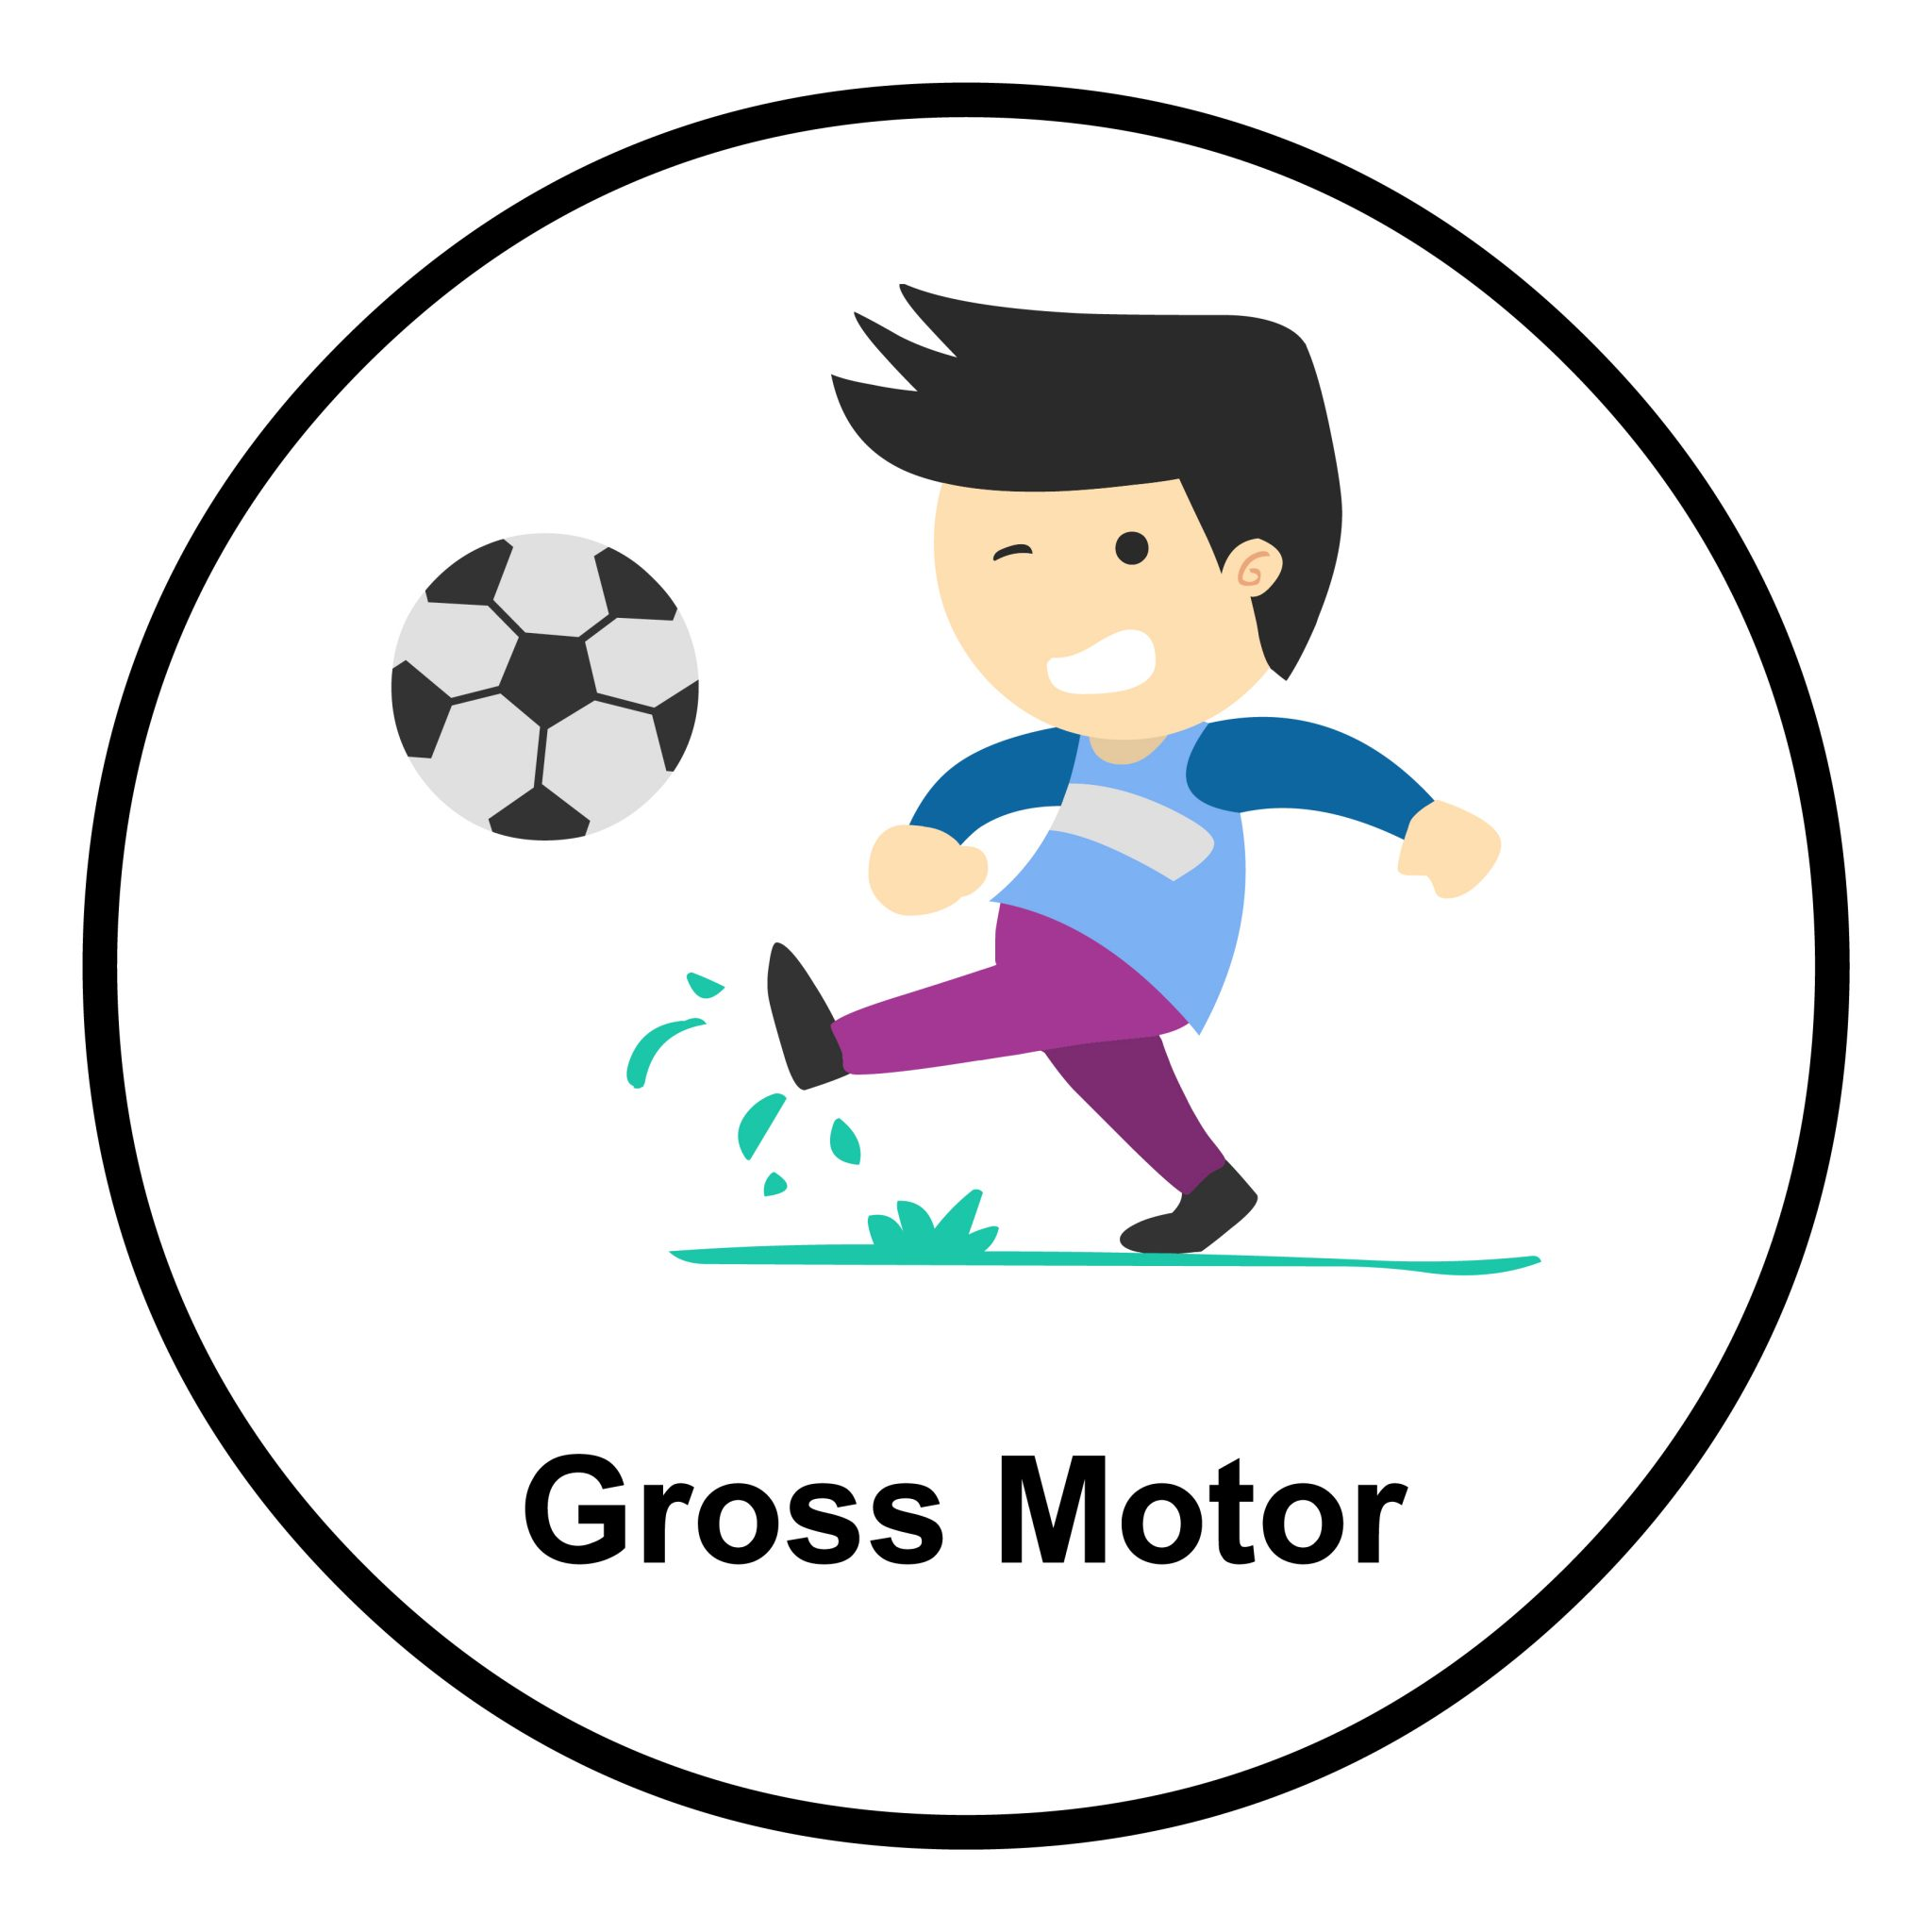 gross motor skills Gross motor activities for preschoolers a must getting their little bodies moving gets them active and makes learning easier and more fun for them.